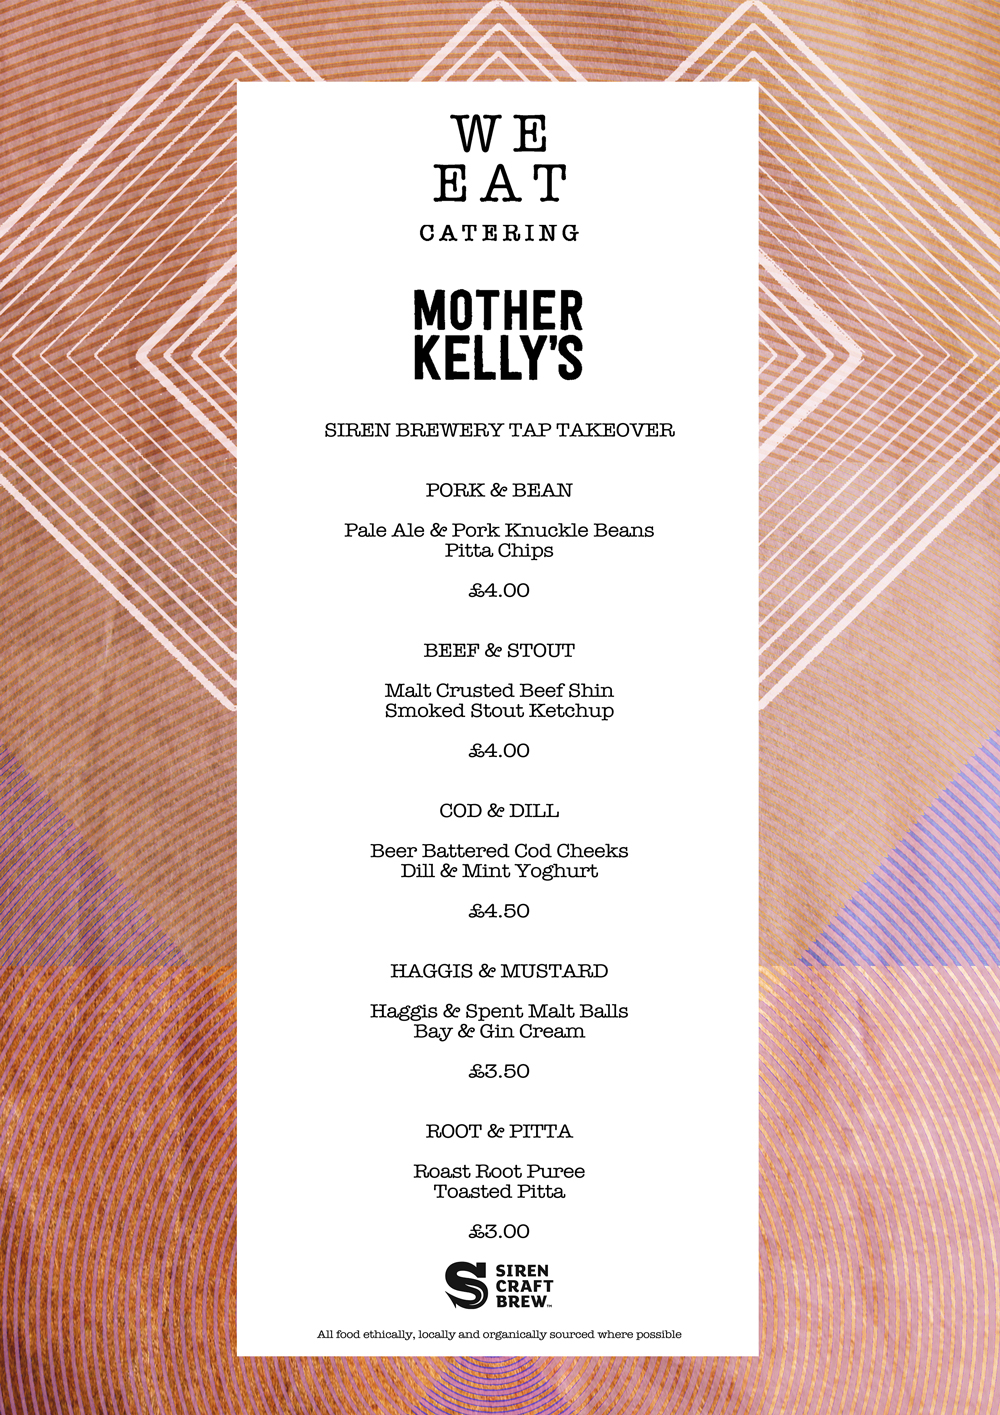 WE EAT X MOTHER KELLY'S